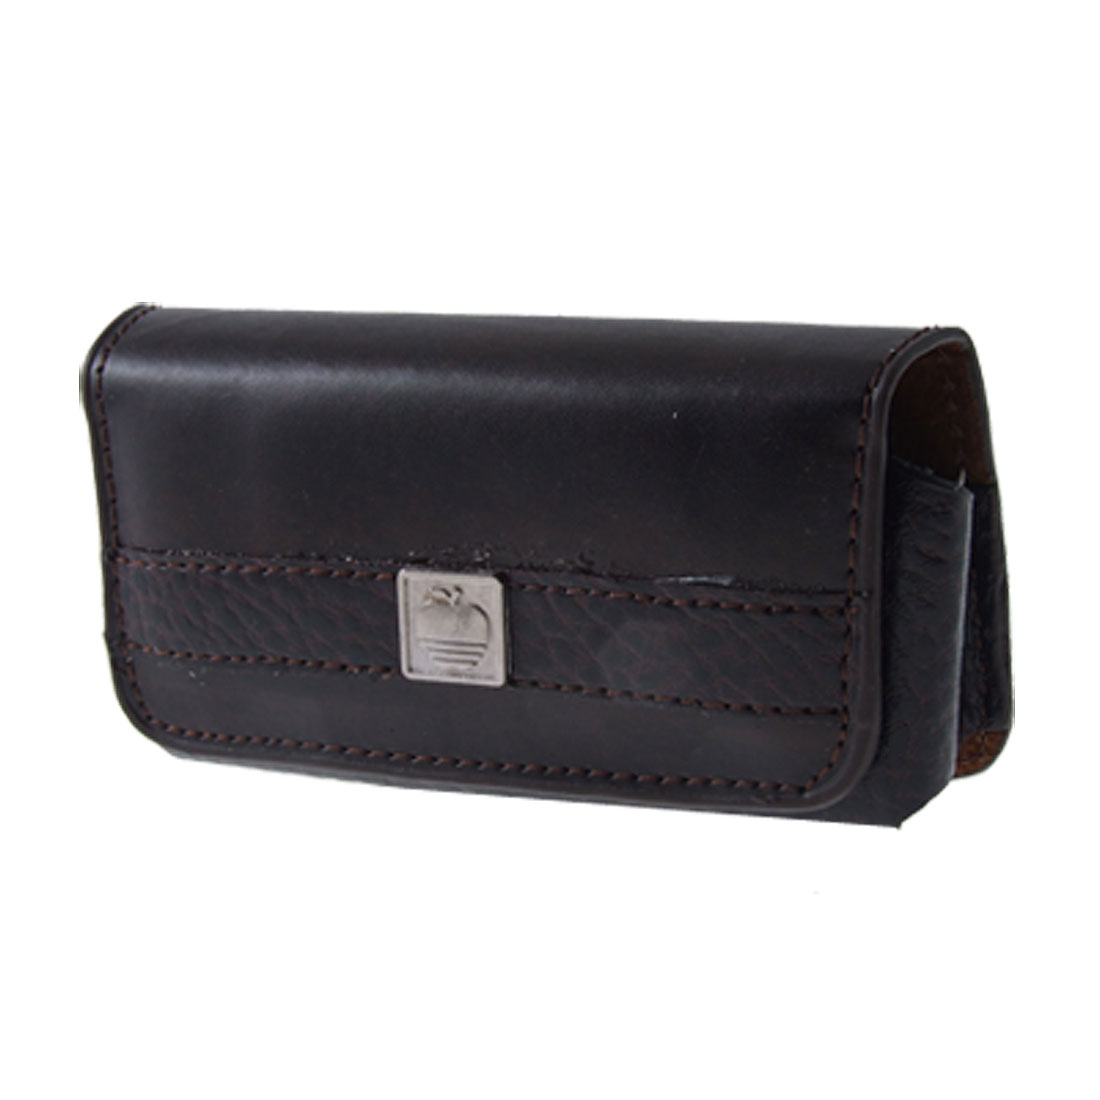 Black Faux Leather Magnet-clasped Closure Pouch Holder for Nokia N73